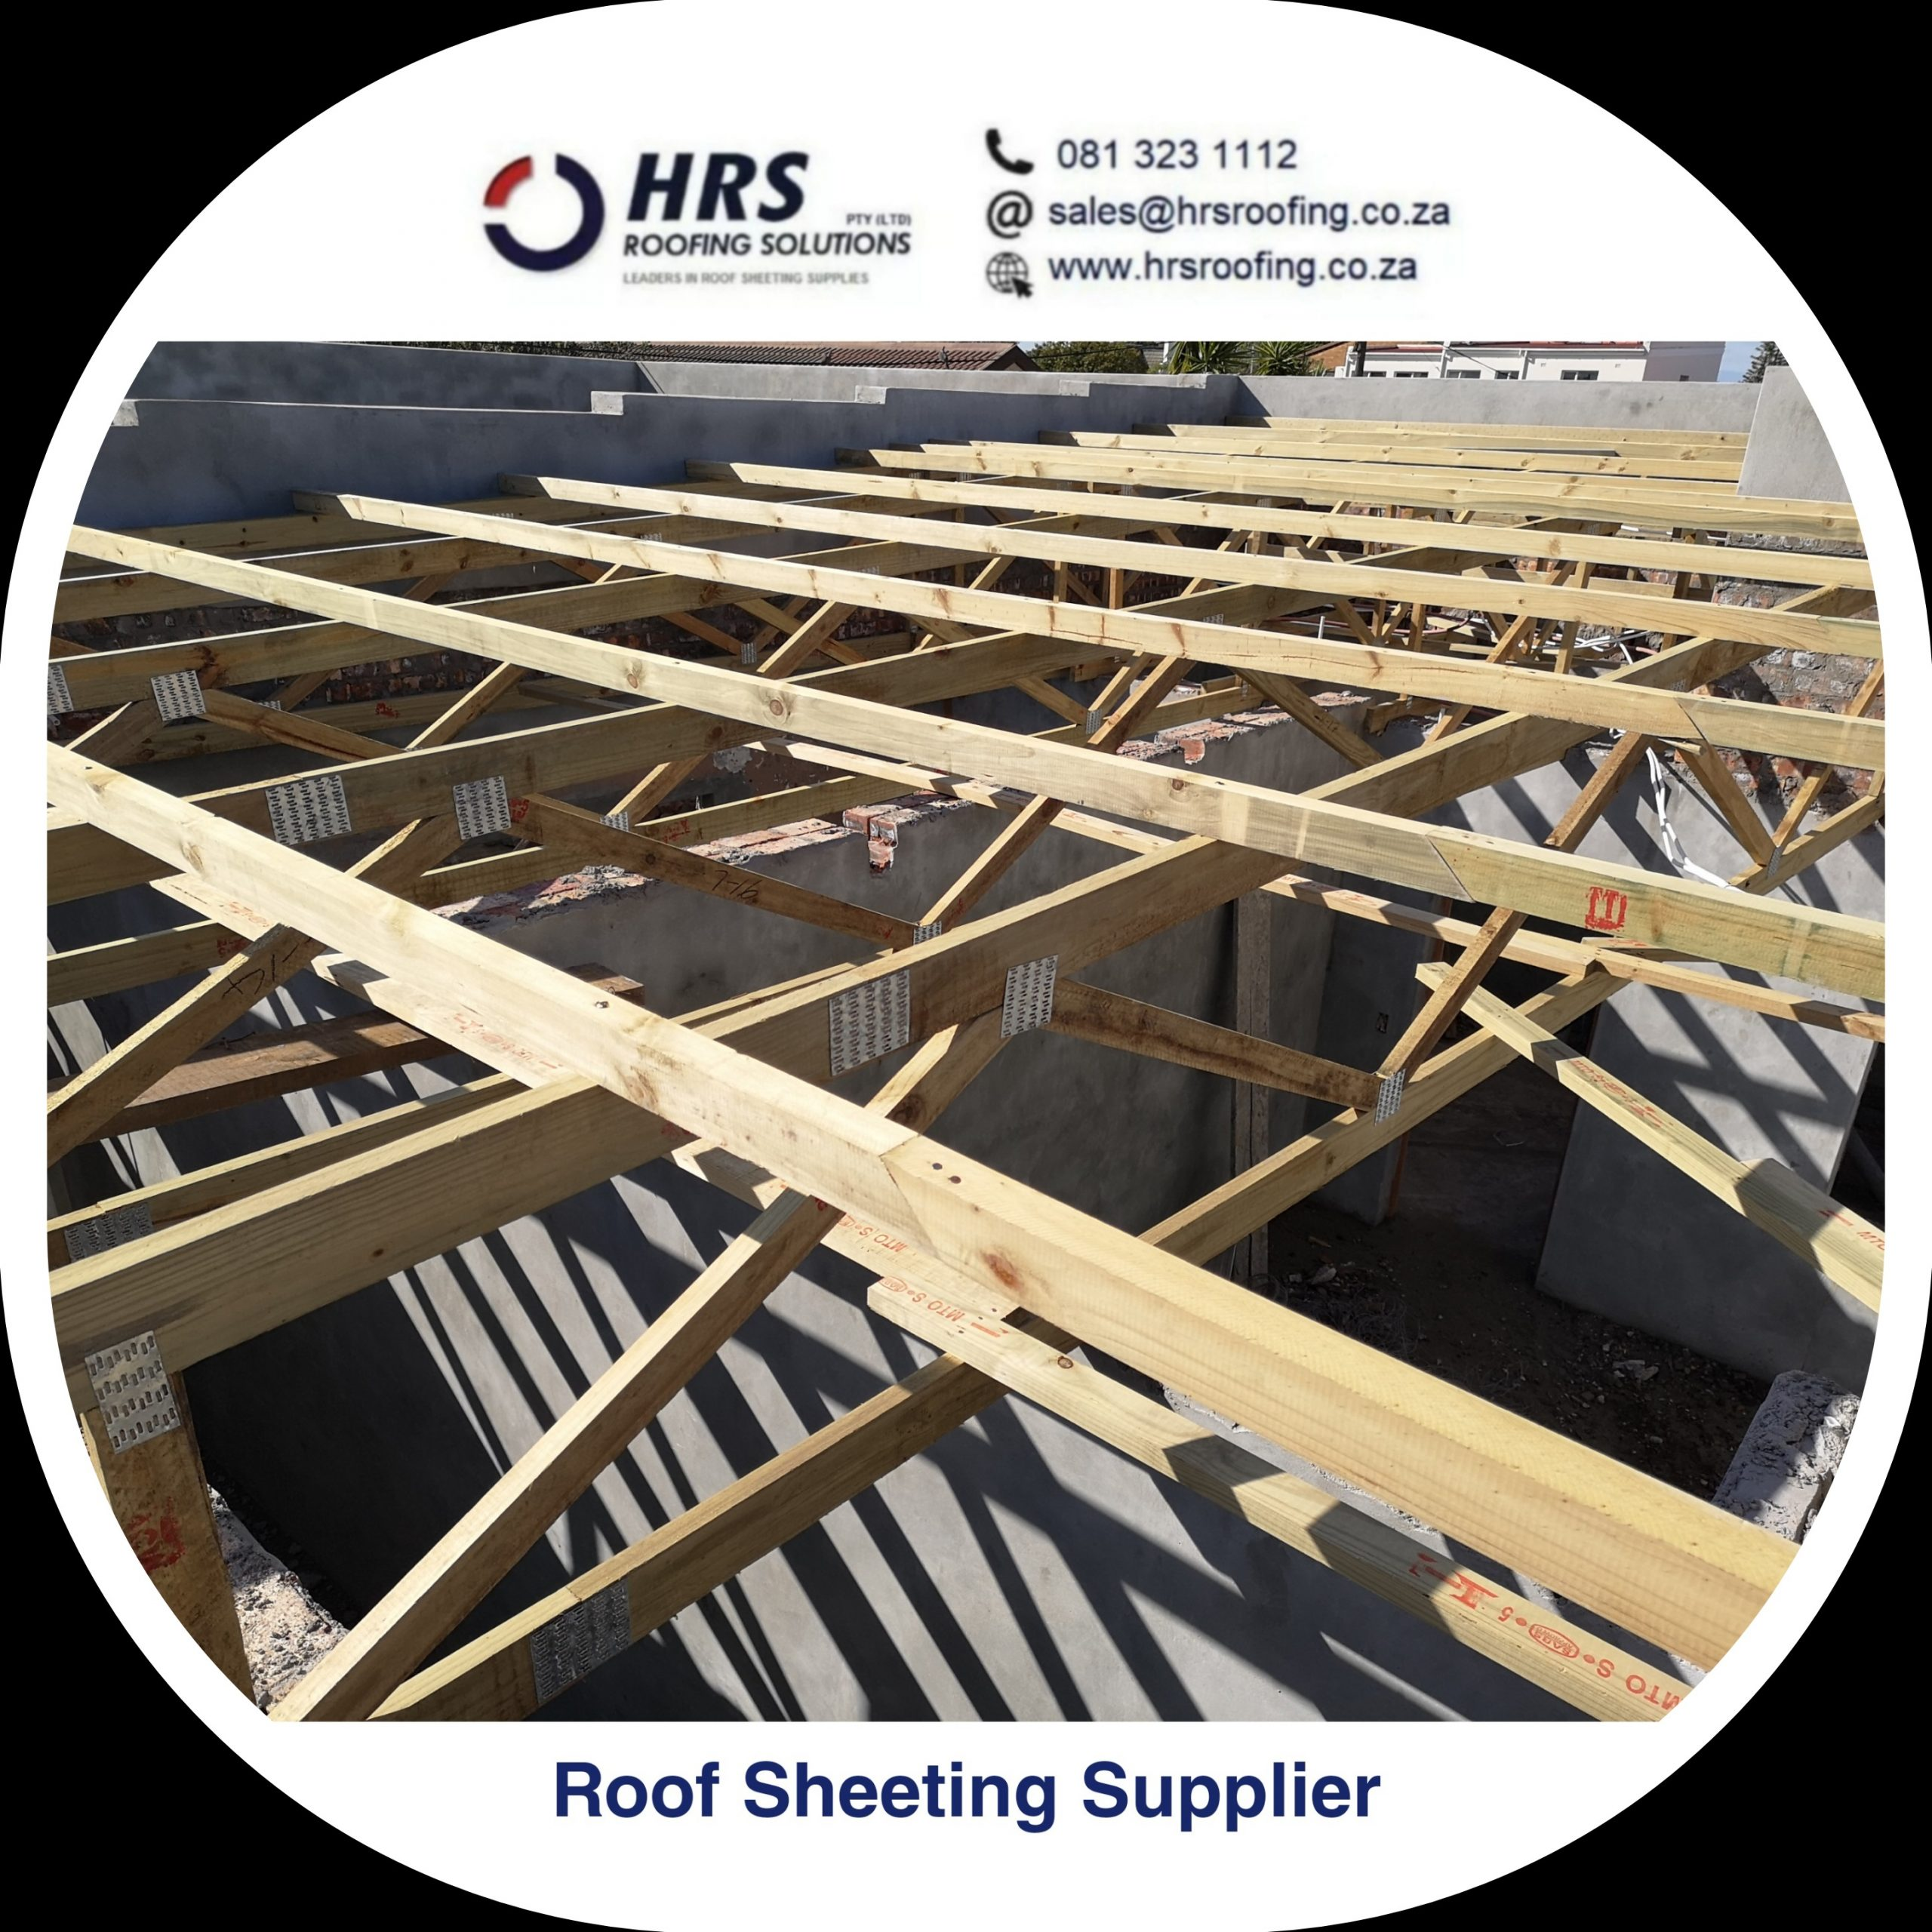 roofing Contractors and Colorbond ibr or Corrugated roof Diamondek roofing contrac scaled - Roofing Gallery